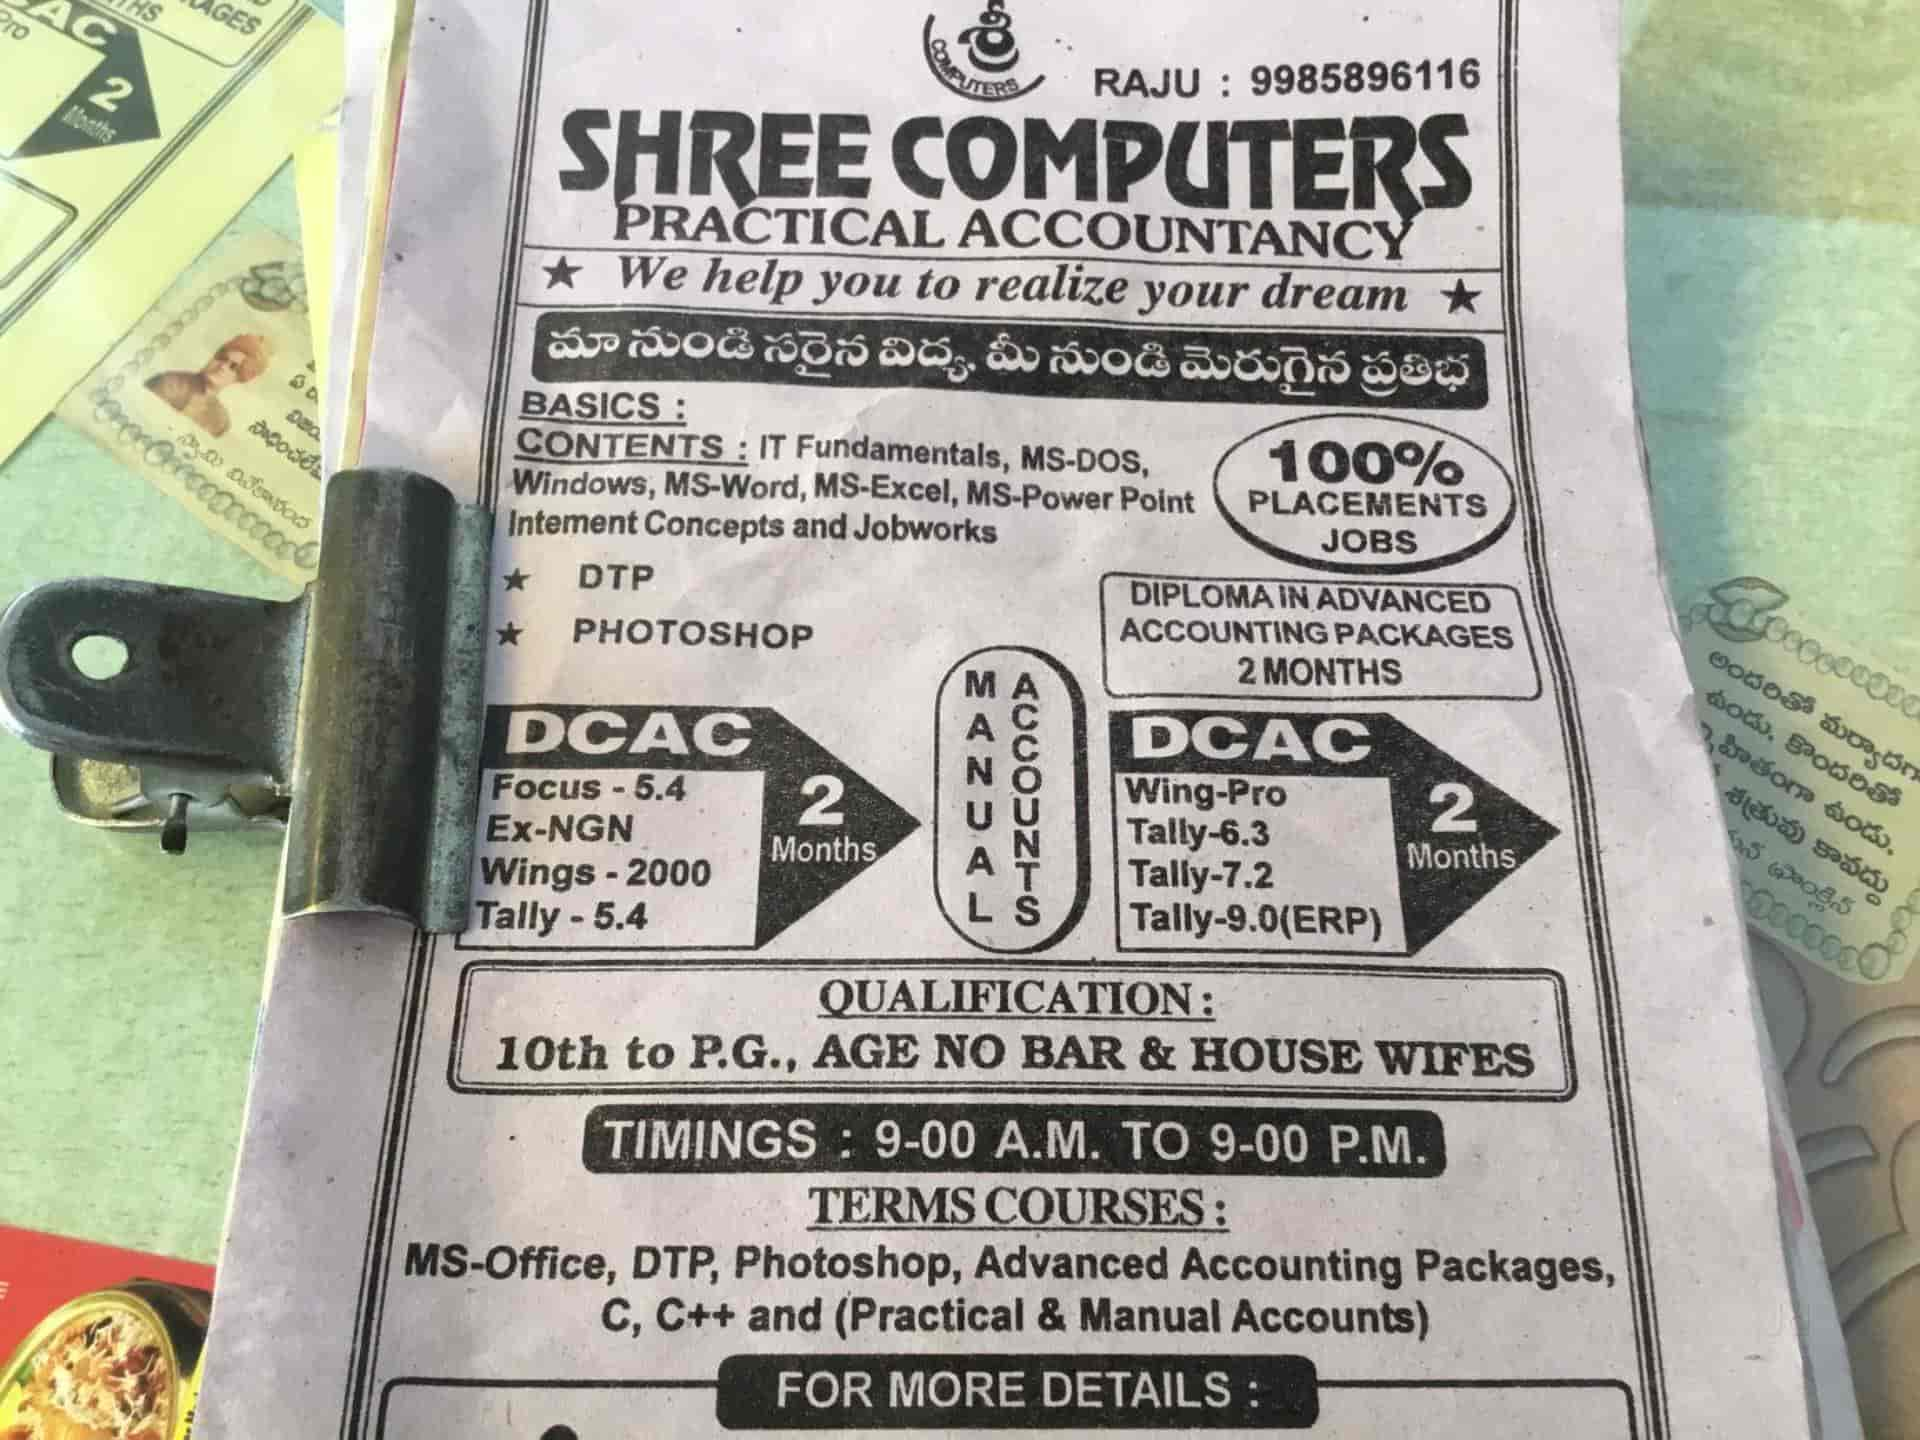 Shree Computers Photos, Shivaji Nagar, Nalgonda- Pictures & Images